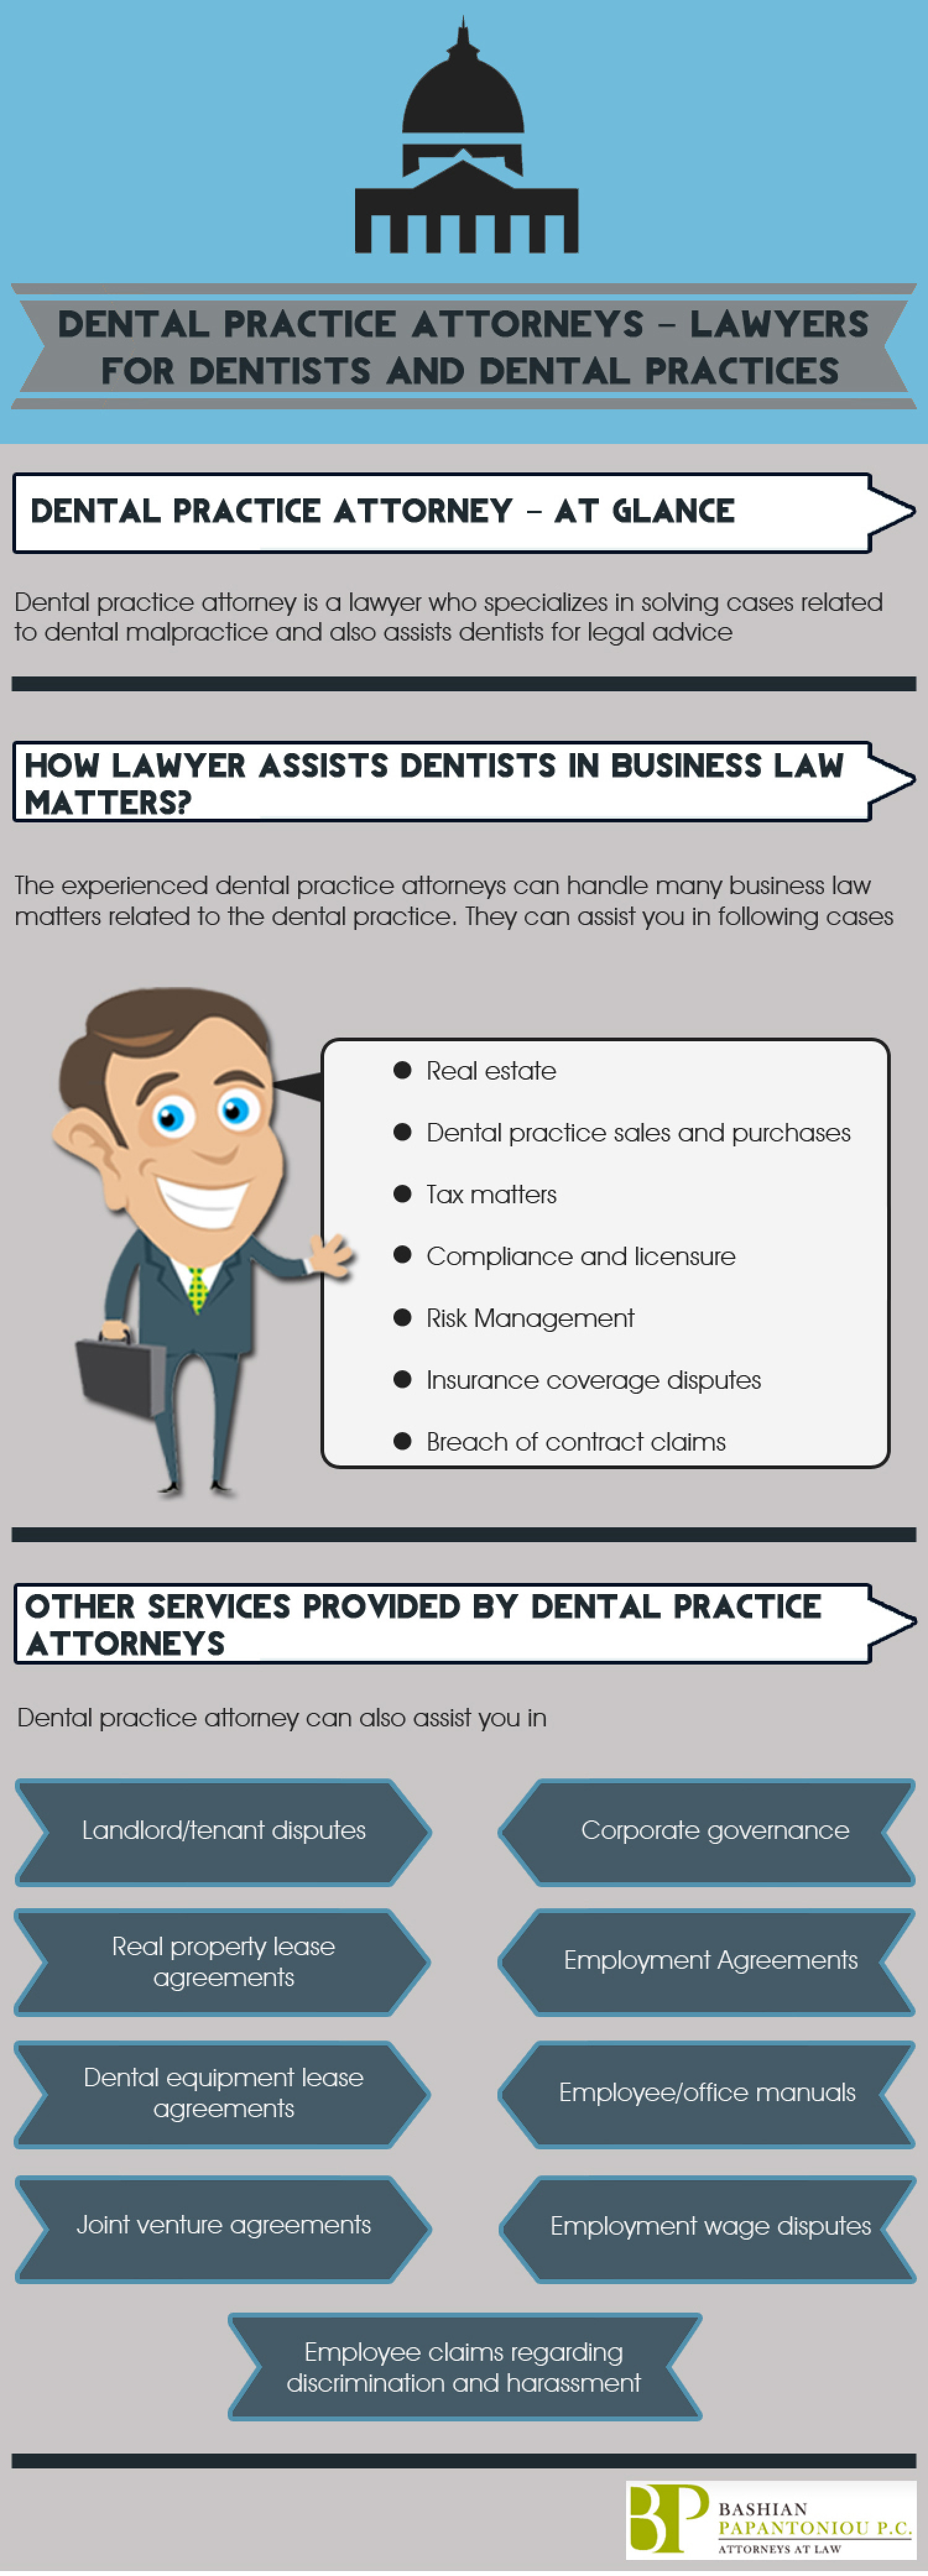 Dental Practice Attorneys – Lawyers for Dentists and Dental Practices Infographic